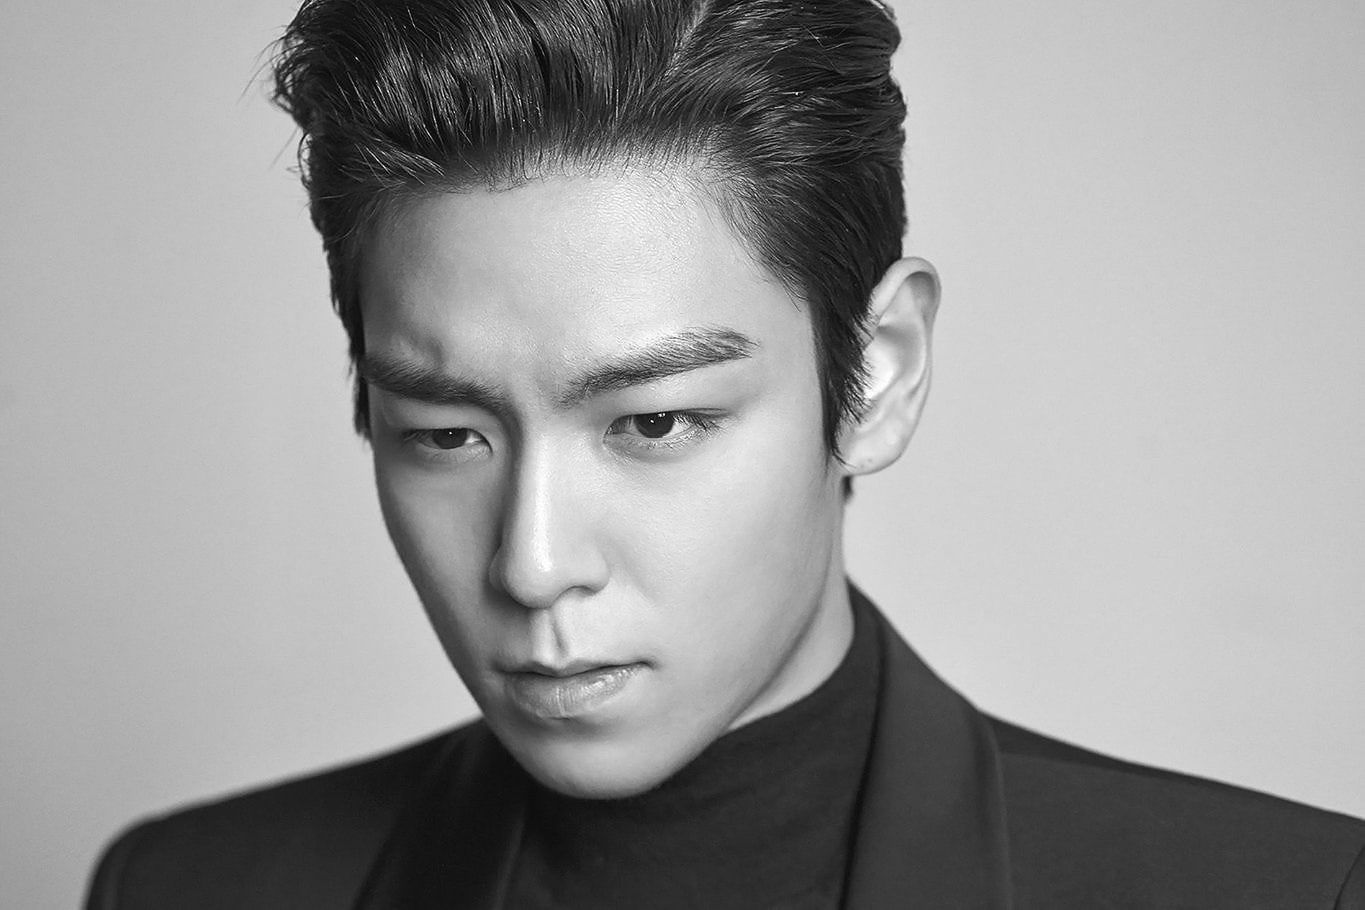 BIGBANG's T.O.P Shows His Support For Growing Voices Against Malicious Comments